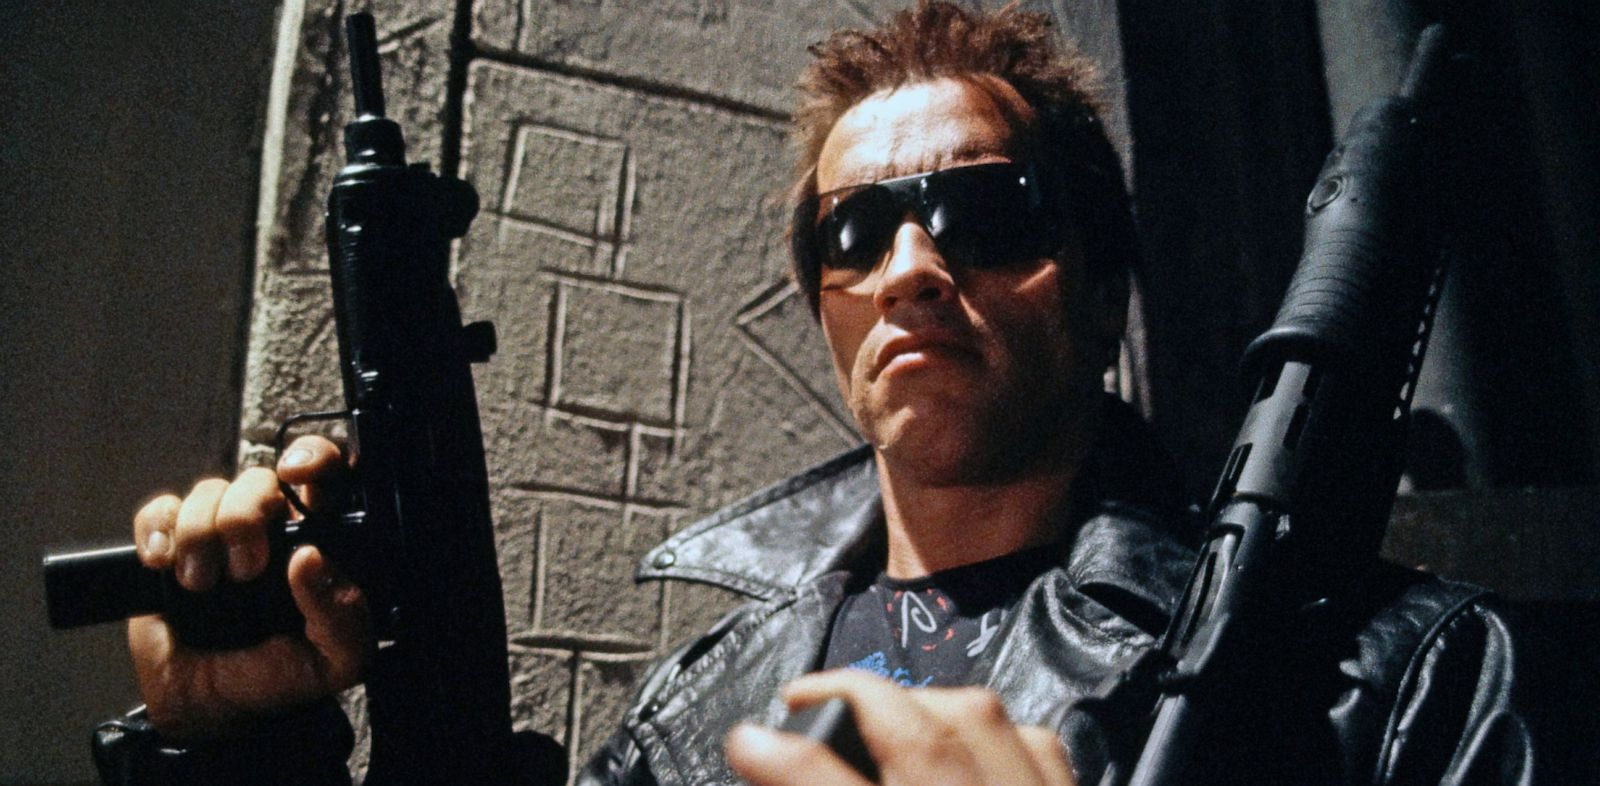 PHOTO: Arnold Schwarzenegger in The Terminator